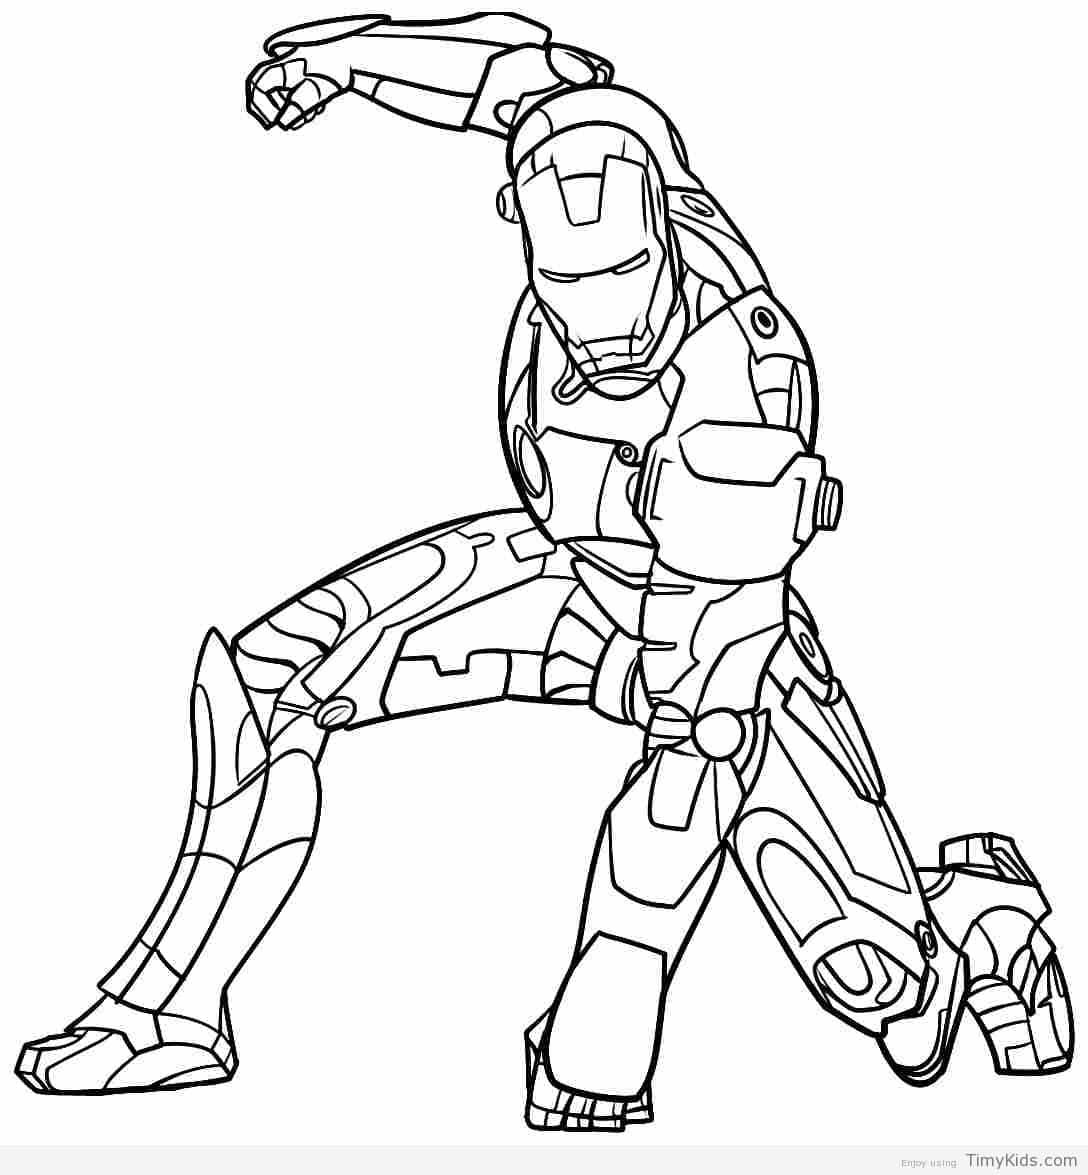 iron man coloring picture iron man stop coloring pages for kids printable free picture iron coloring man